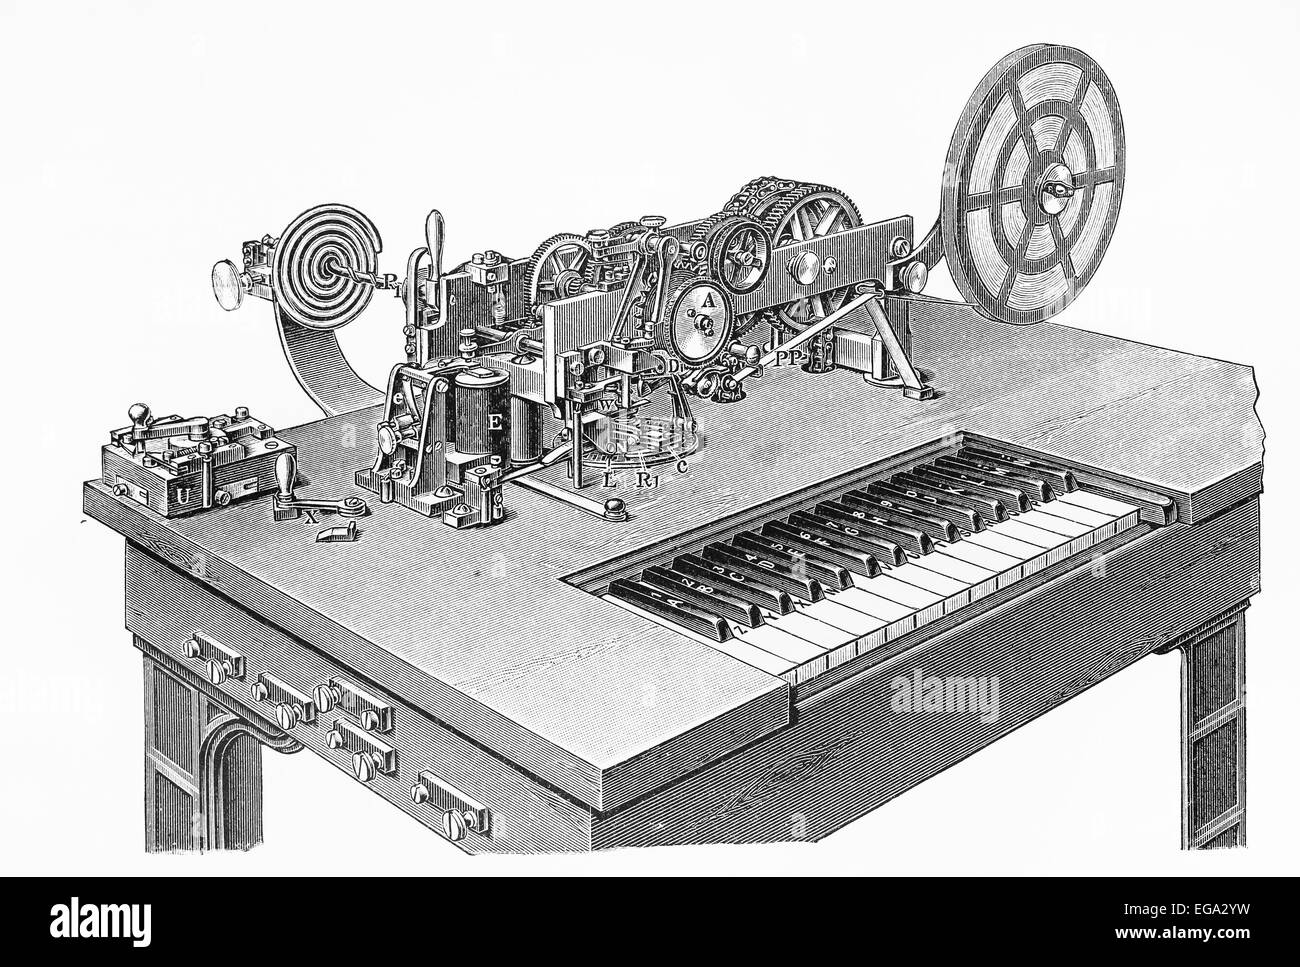 Vintage 19th century drawing of a Hughes Morse code ...  Vintage 19th ce...